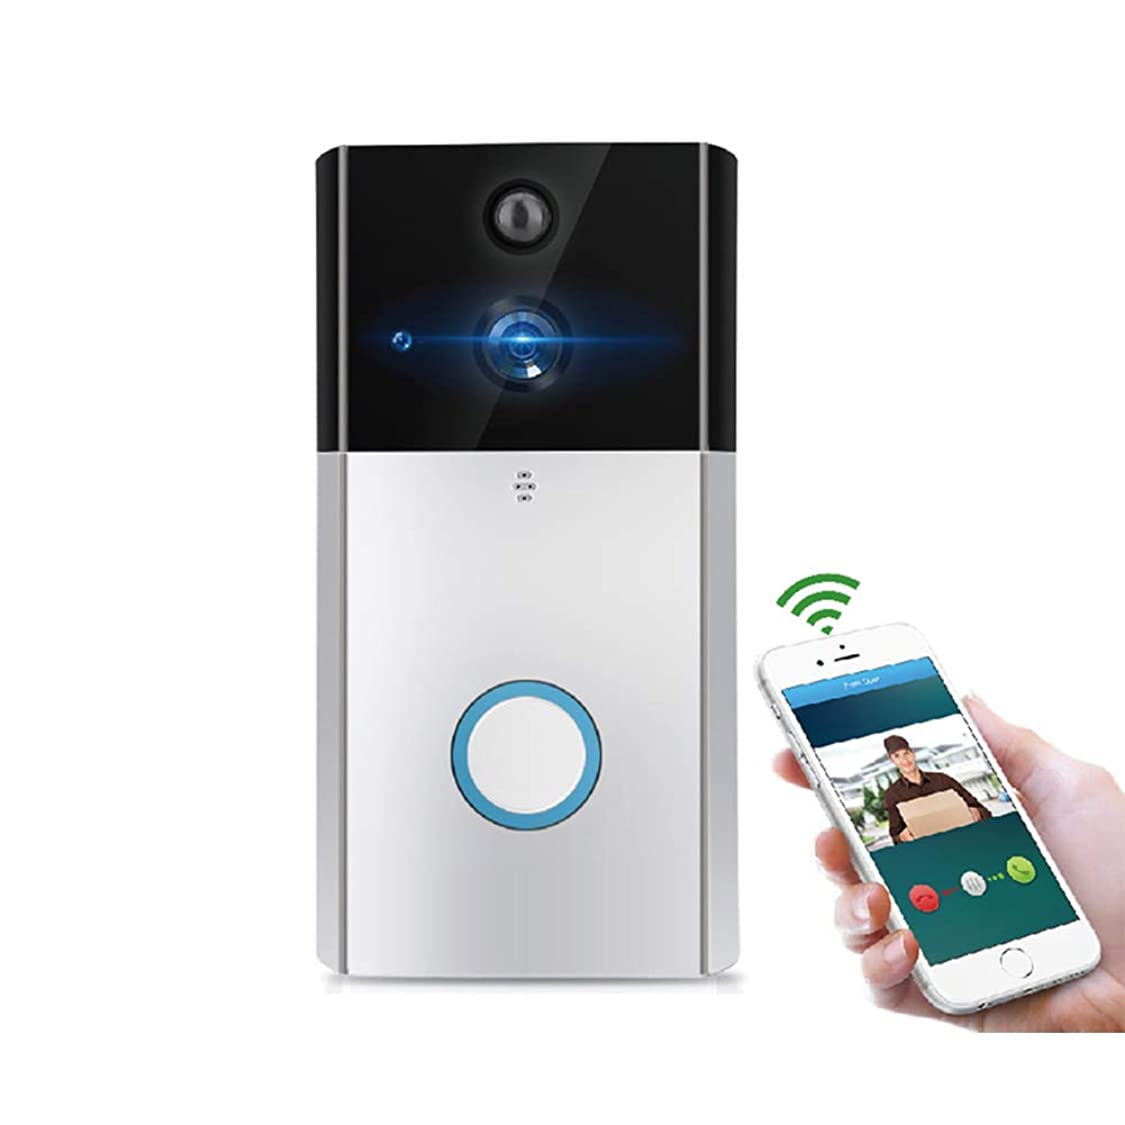 YMXLJJ Intelligent Video Doorbell 720P HD Camera WiFi Mobile Phone Remote Camera Night Vision Home Voice Intercom Low Power Support Android and iOS,Silver rc87398135103989